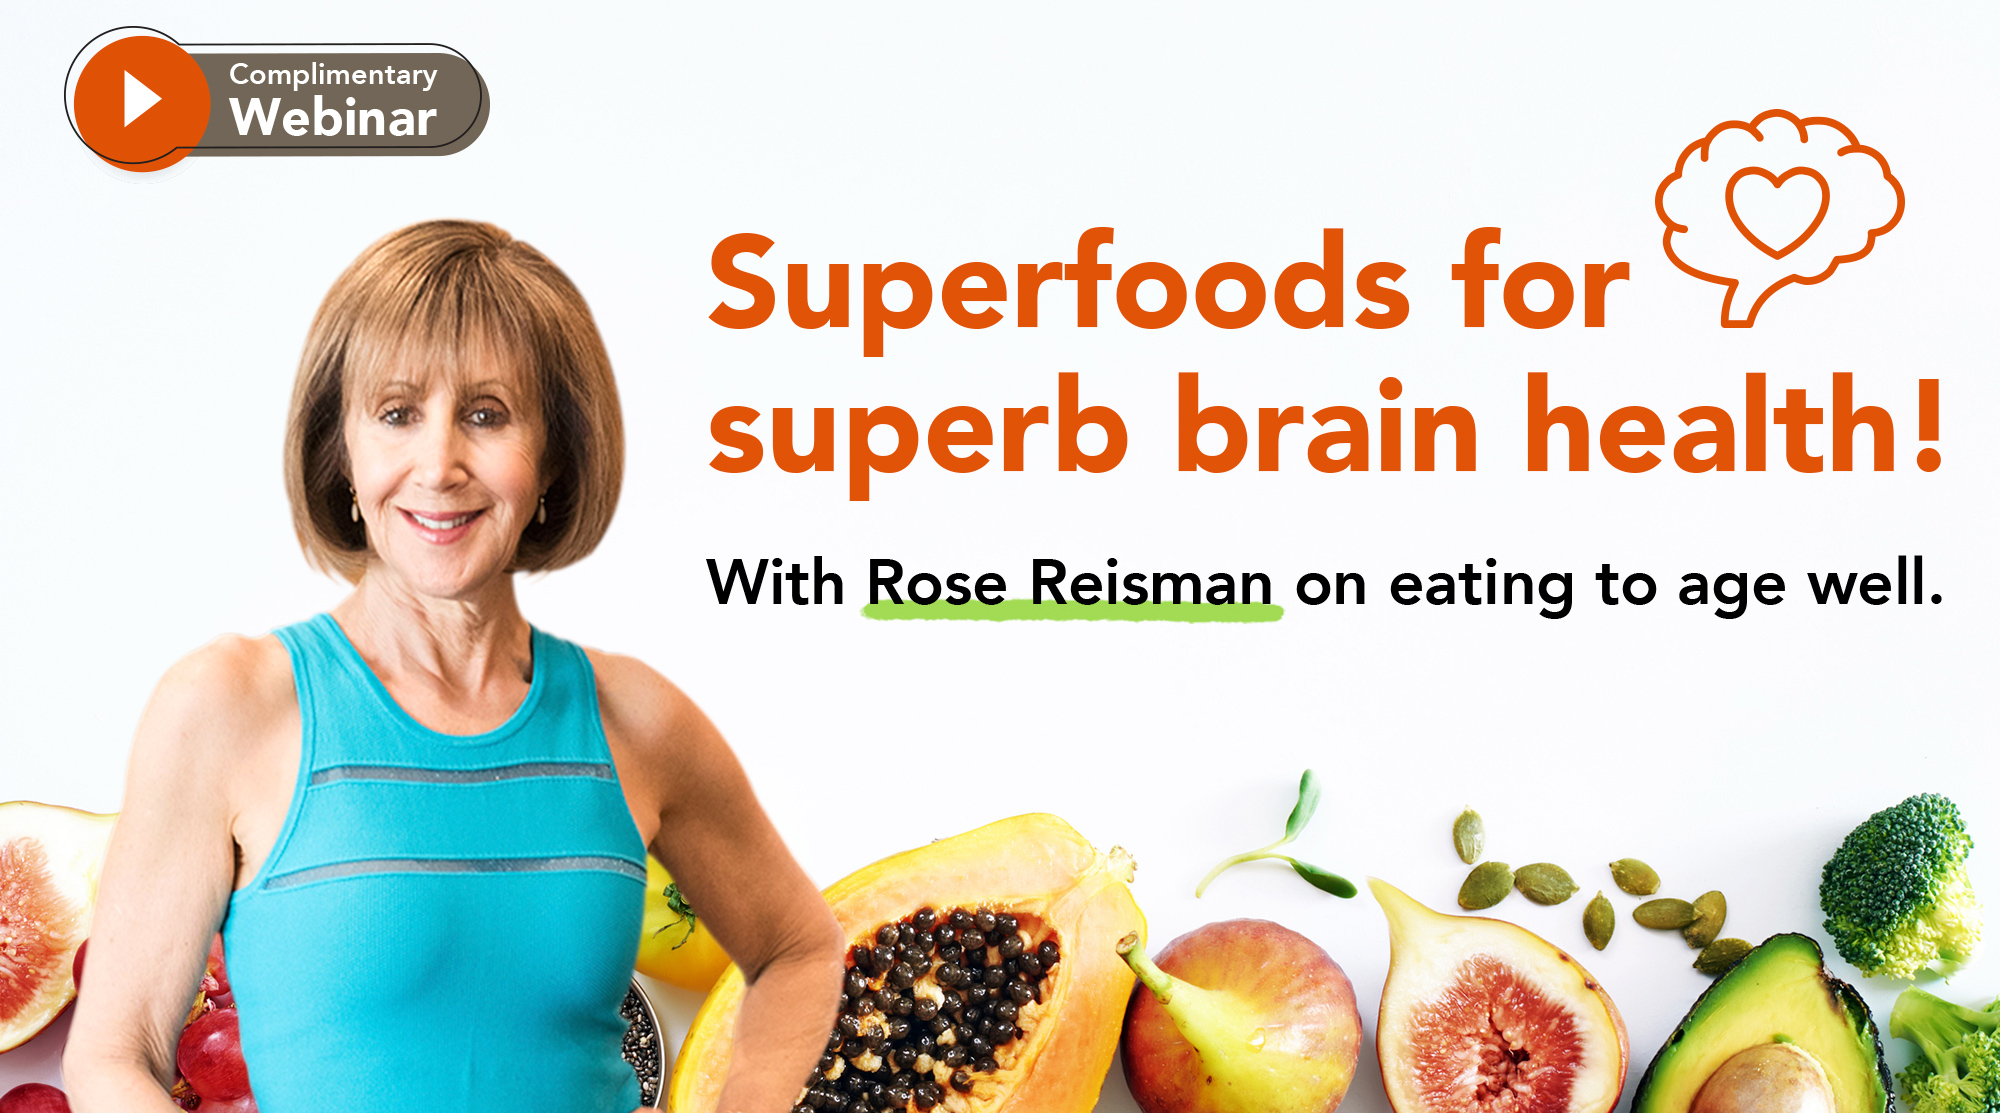 Rose Reisman on a superfood background with the webinar title saying: Superfoods for superb brain health! With Rose Reisman on eating to age well. Thursday July 22nd at 2pm EDT and 11am PDT.